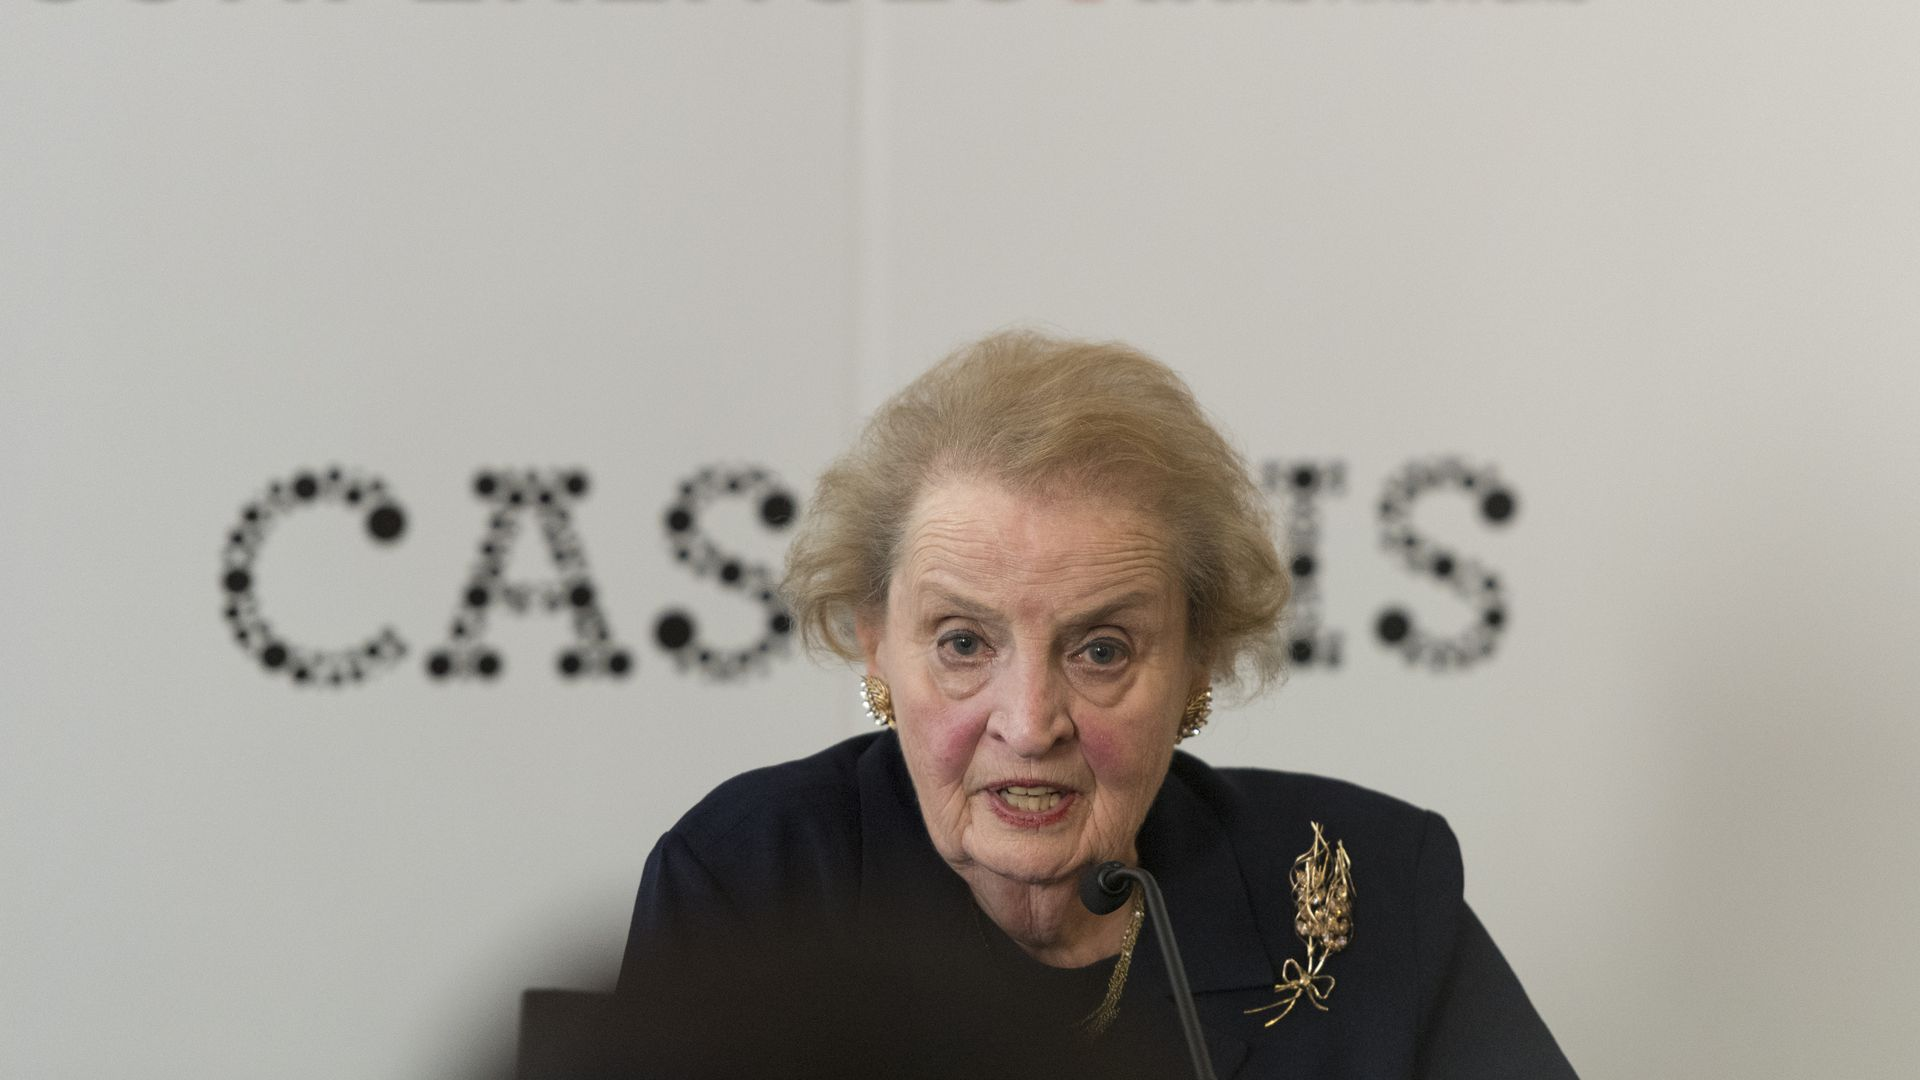 Madeleine Albright in black before a white background with black lettering.